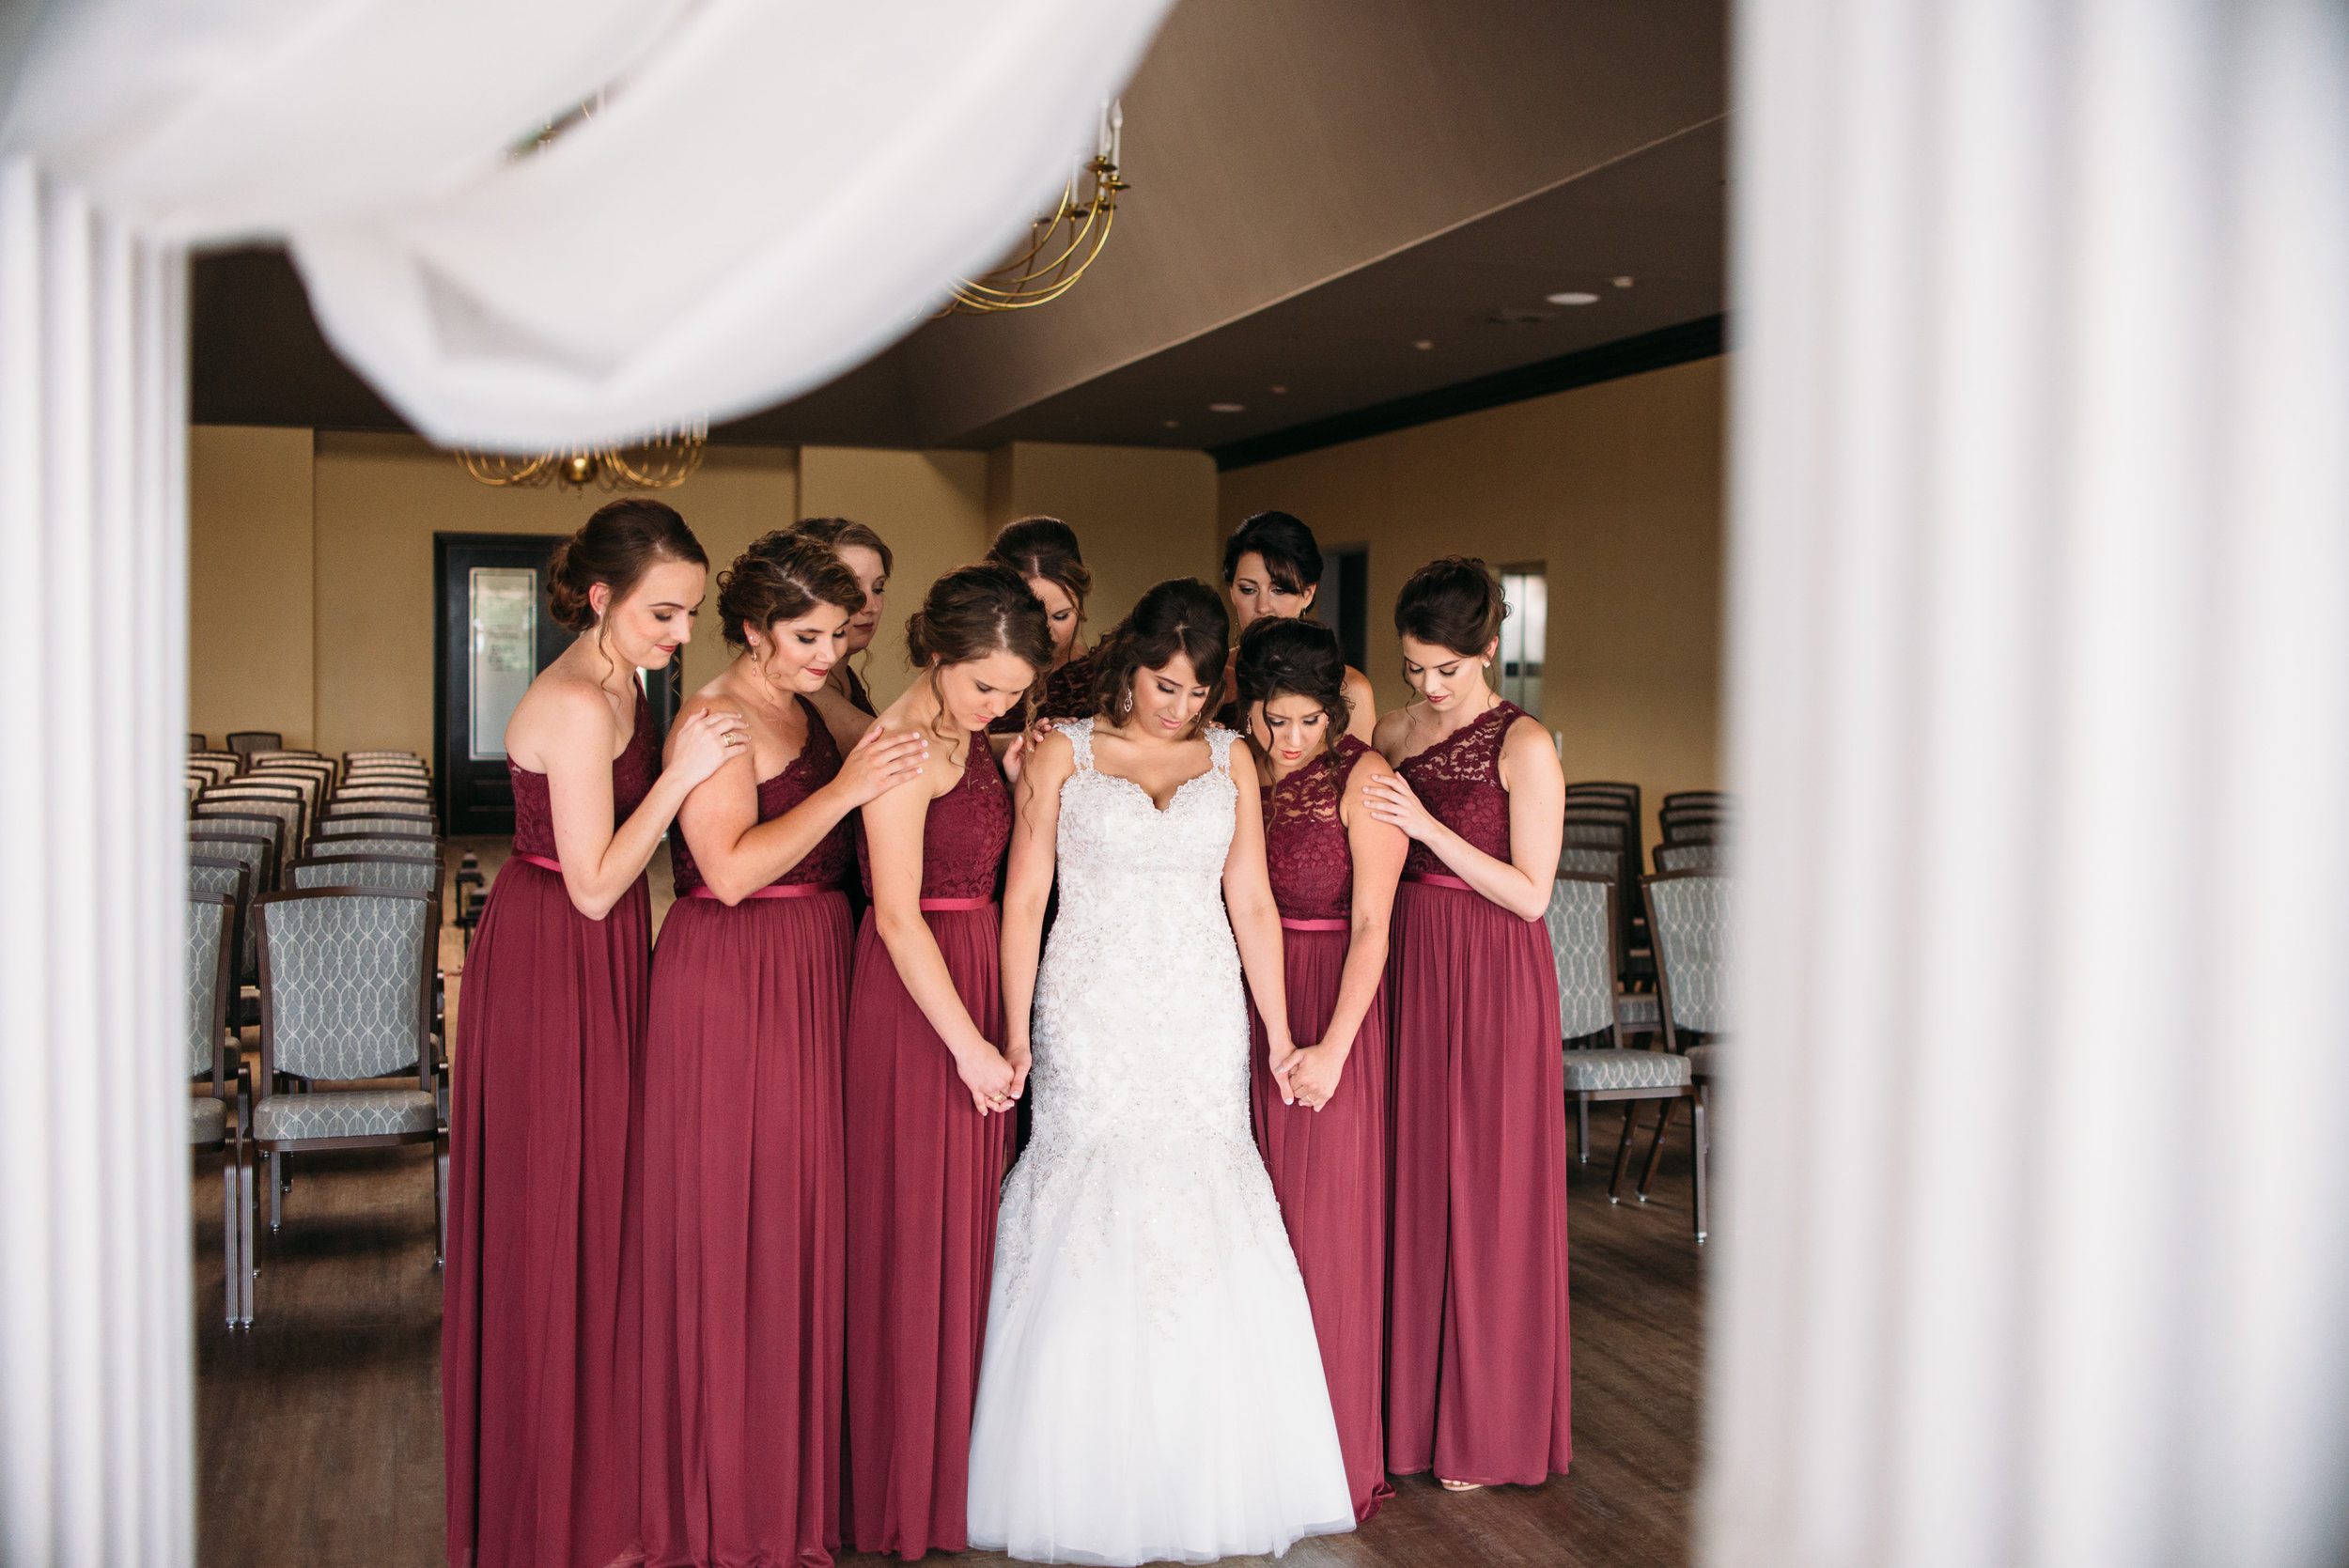 PhillipsEventCenter-AggieWedding-CollegeStationPhotographer_12.jpg